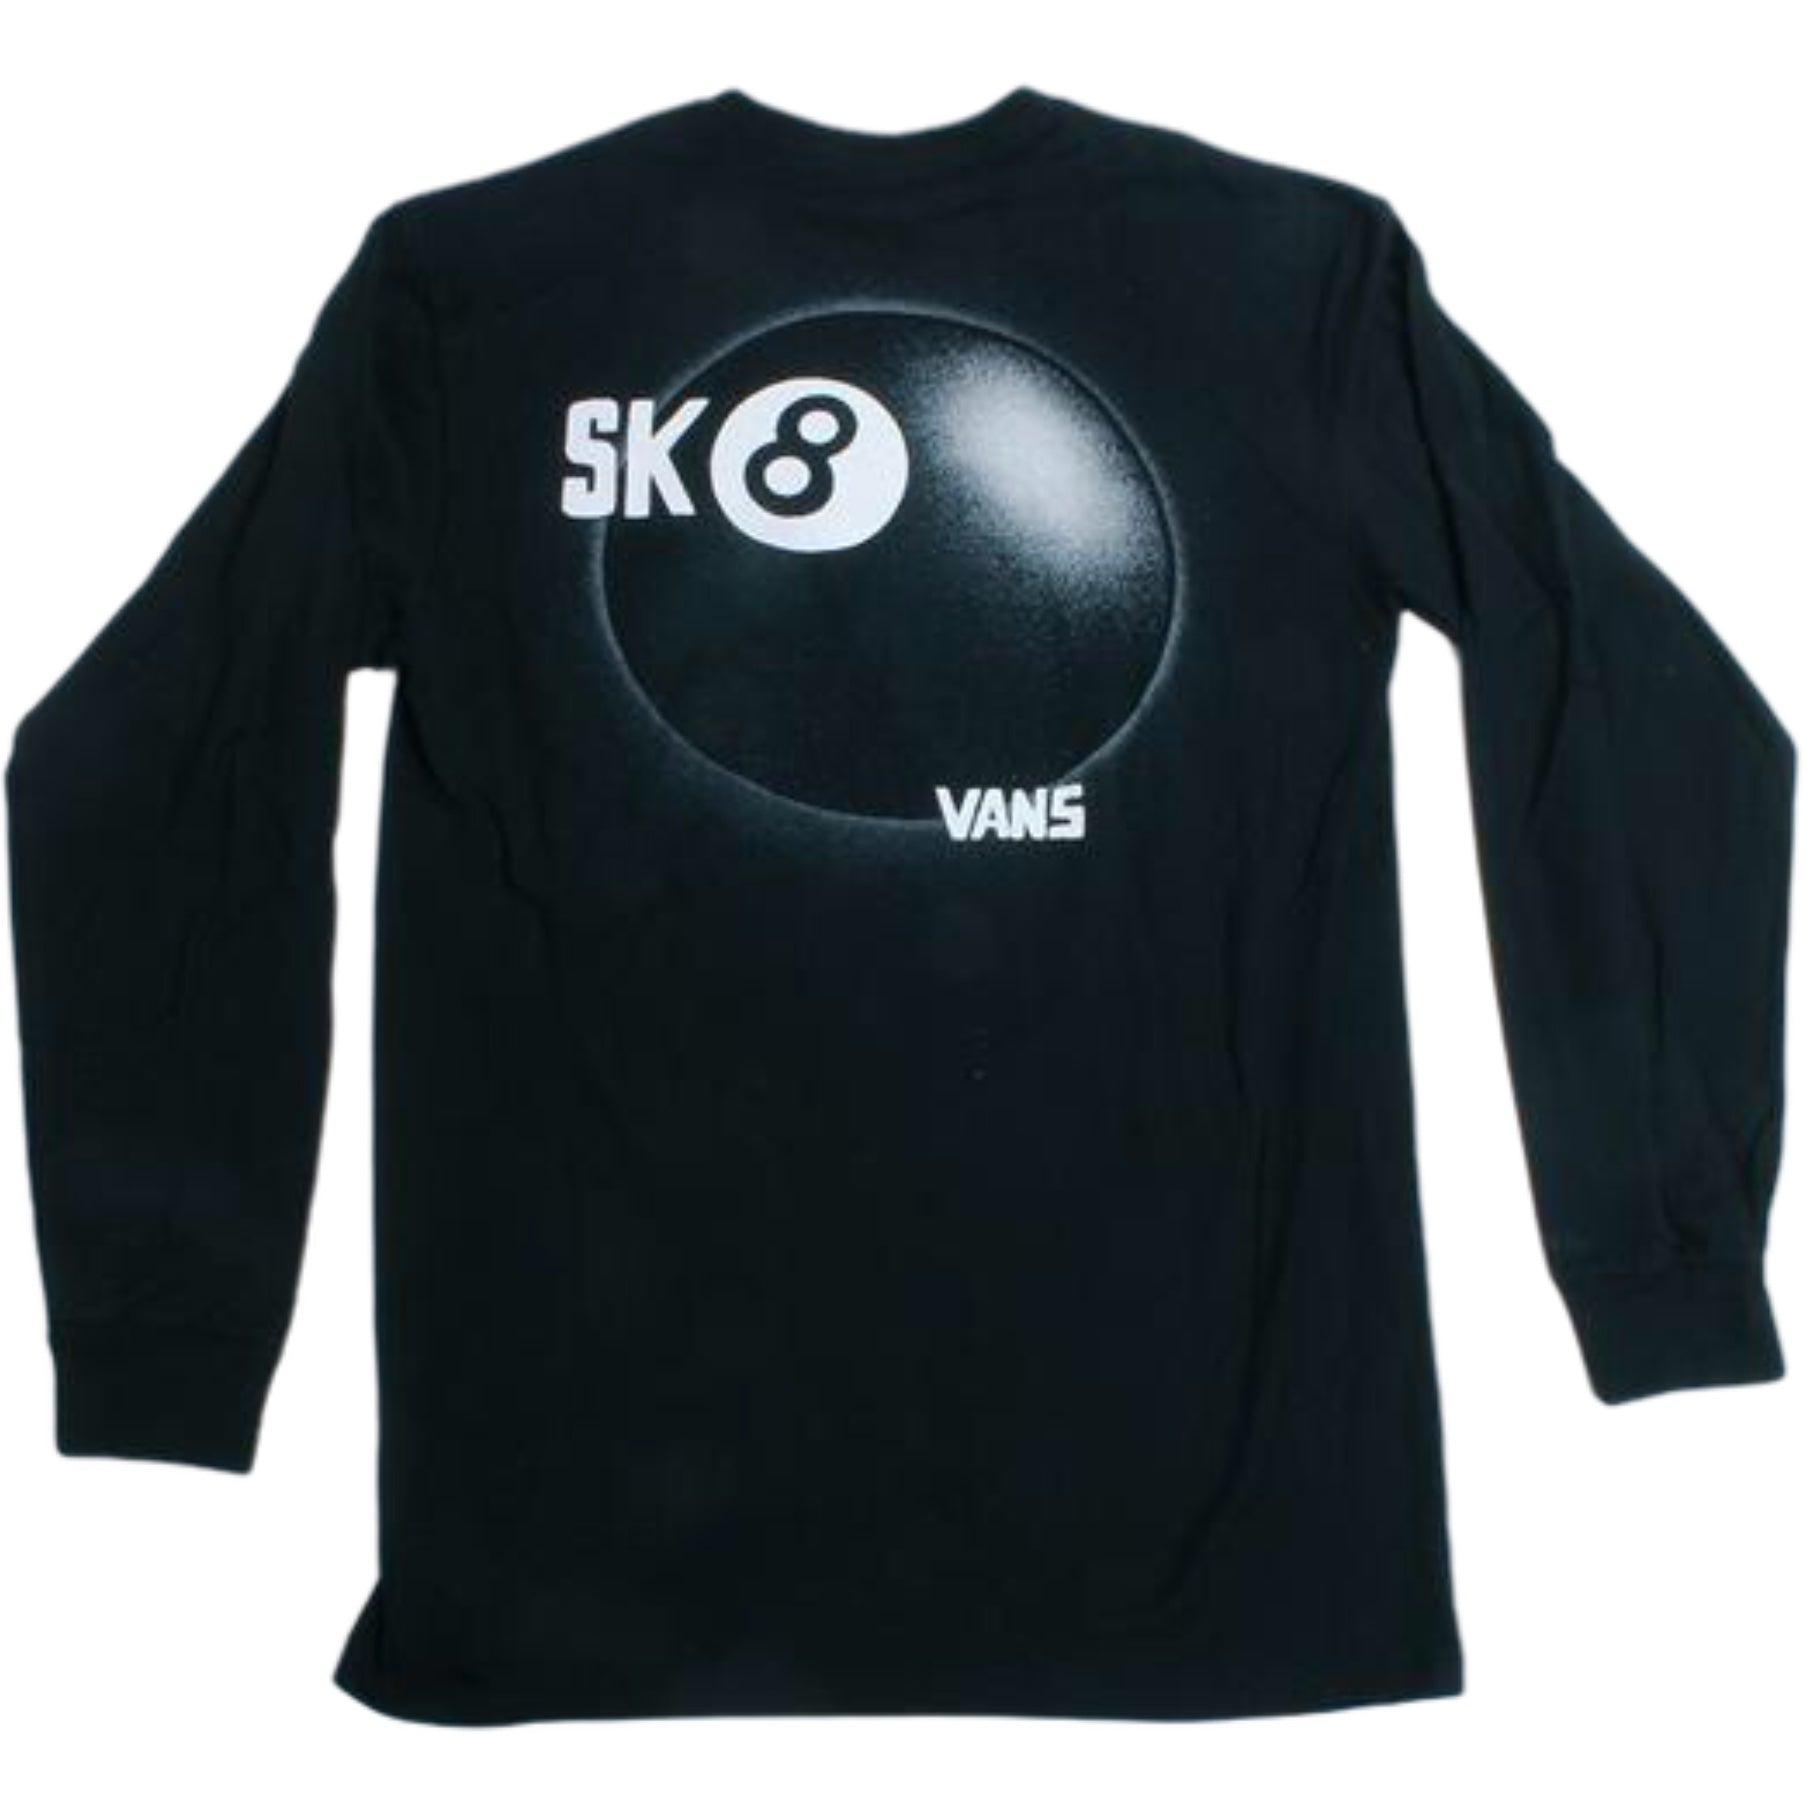 Vans Skate Ball II LS Black